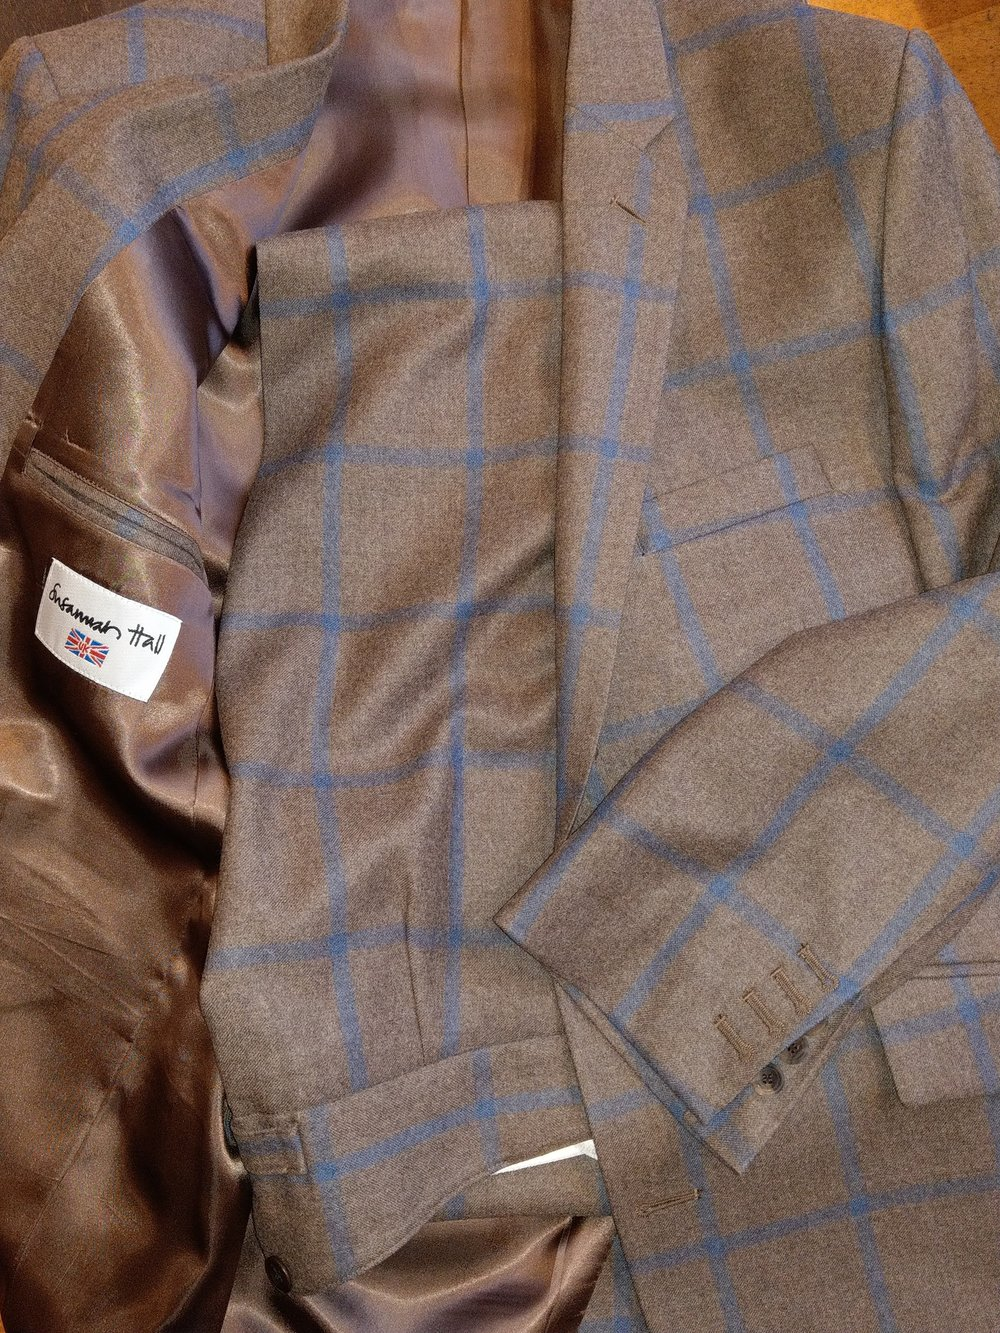 brown-check-flannel-suit-susannah-hall-gregg-wallace-bespoke-tailor-harrisons-uk-made-british.jpg